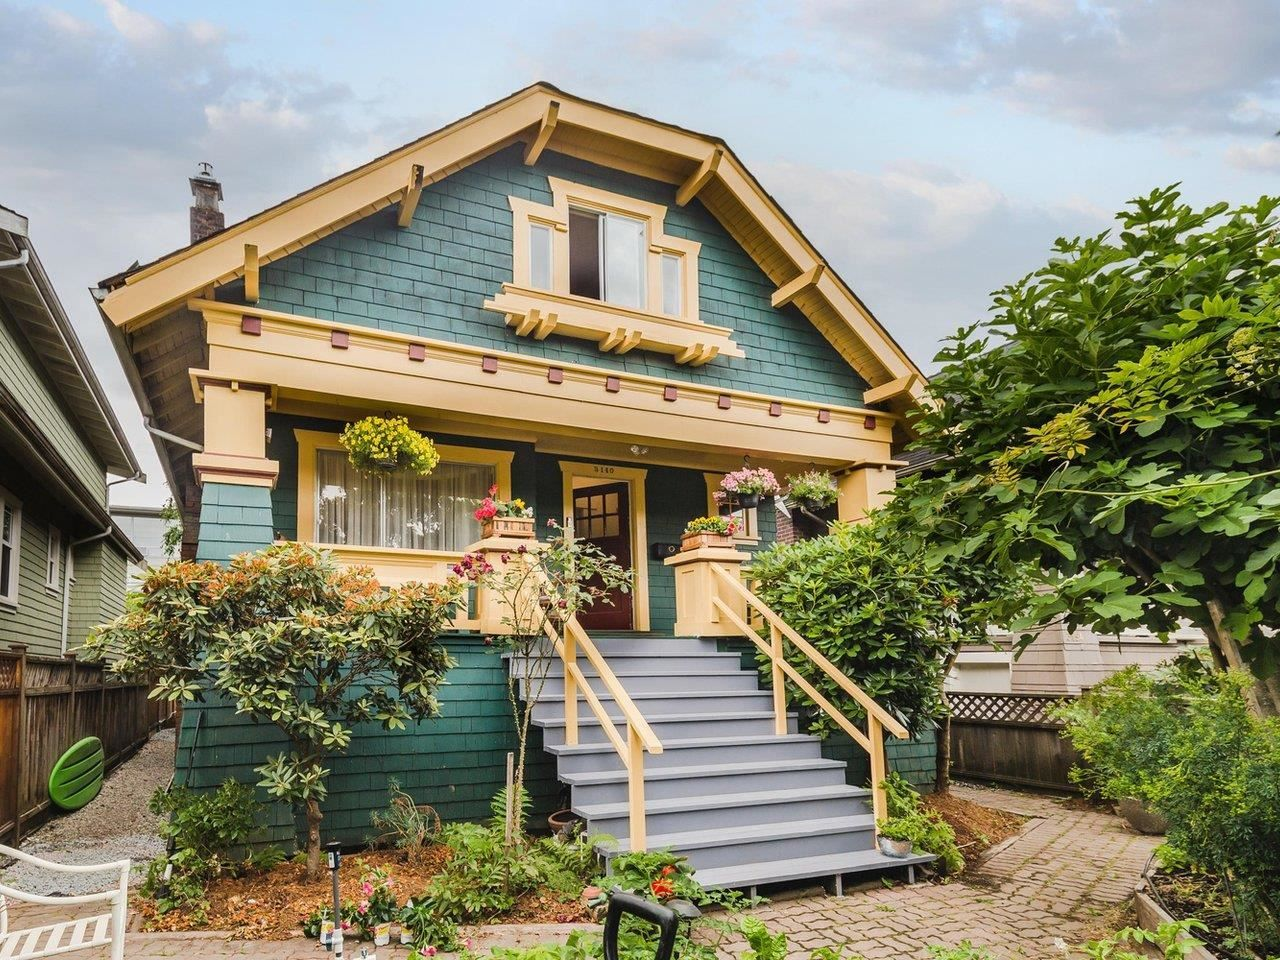 Main Photo: 3140 W 3RD Avenue in Vancouver: Kitsilano House for sale (Vancouver West)  : MLS®# R2602425